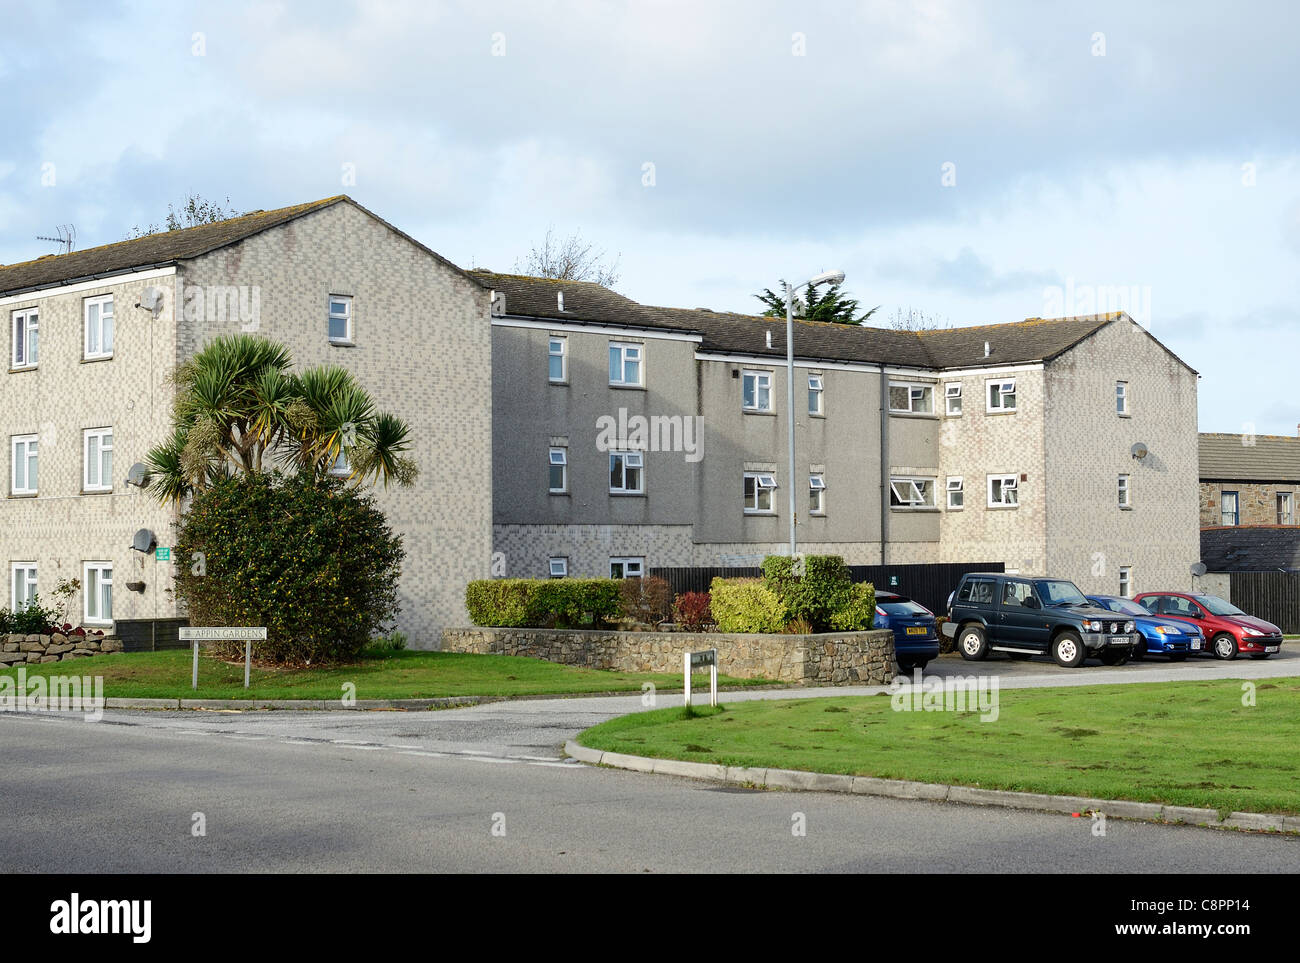 affordable housing in redruth, cornwall, uk - Stock Image